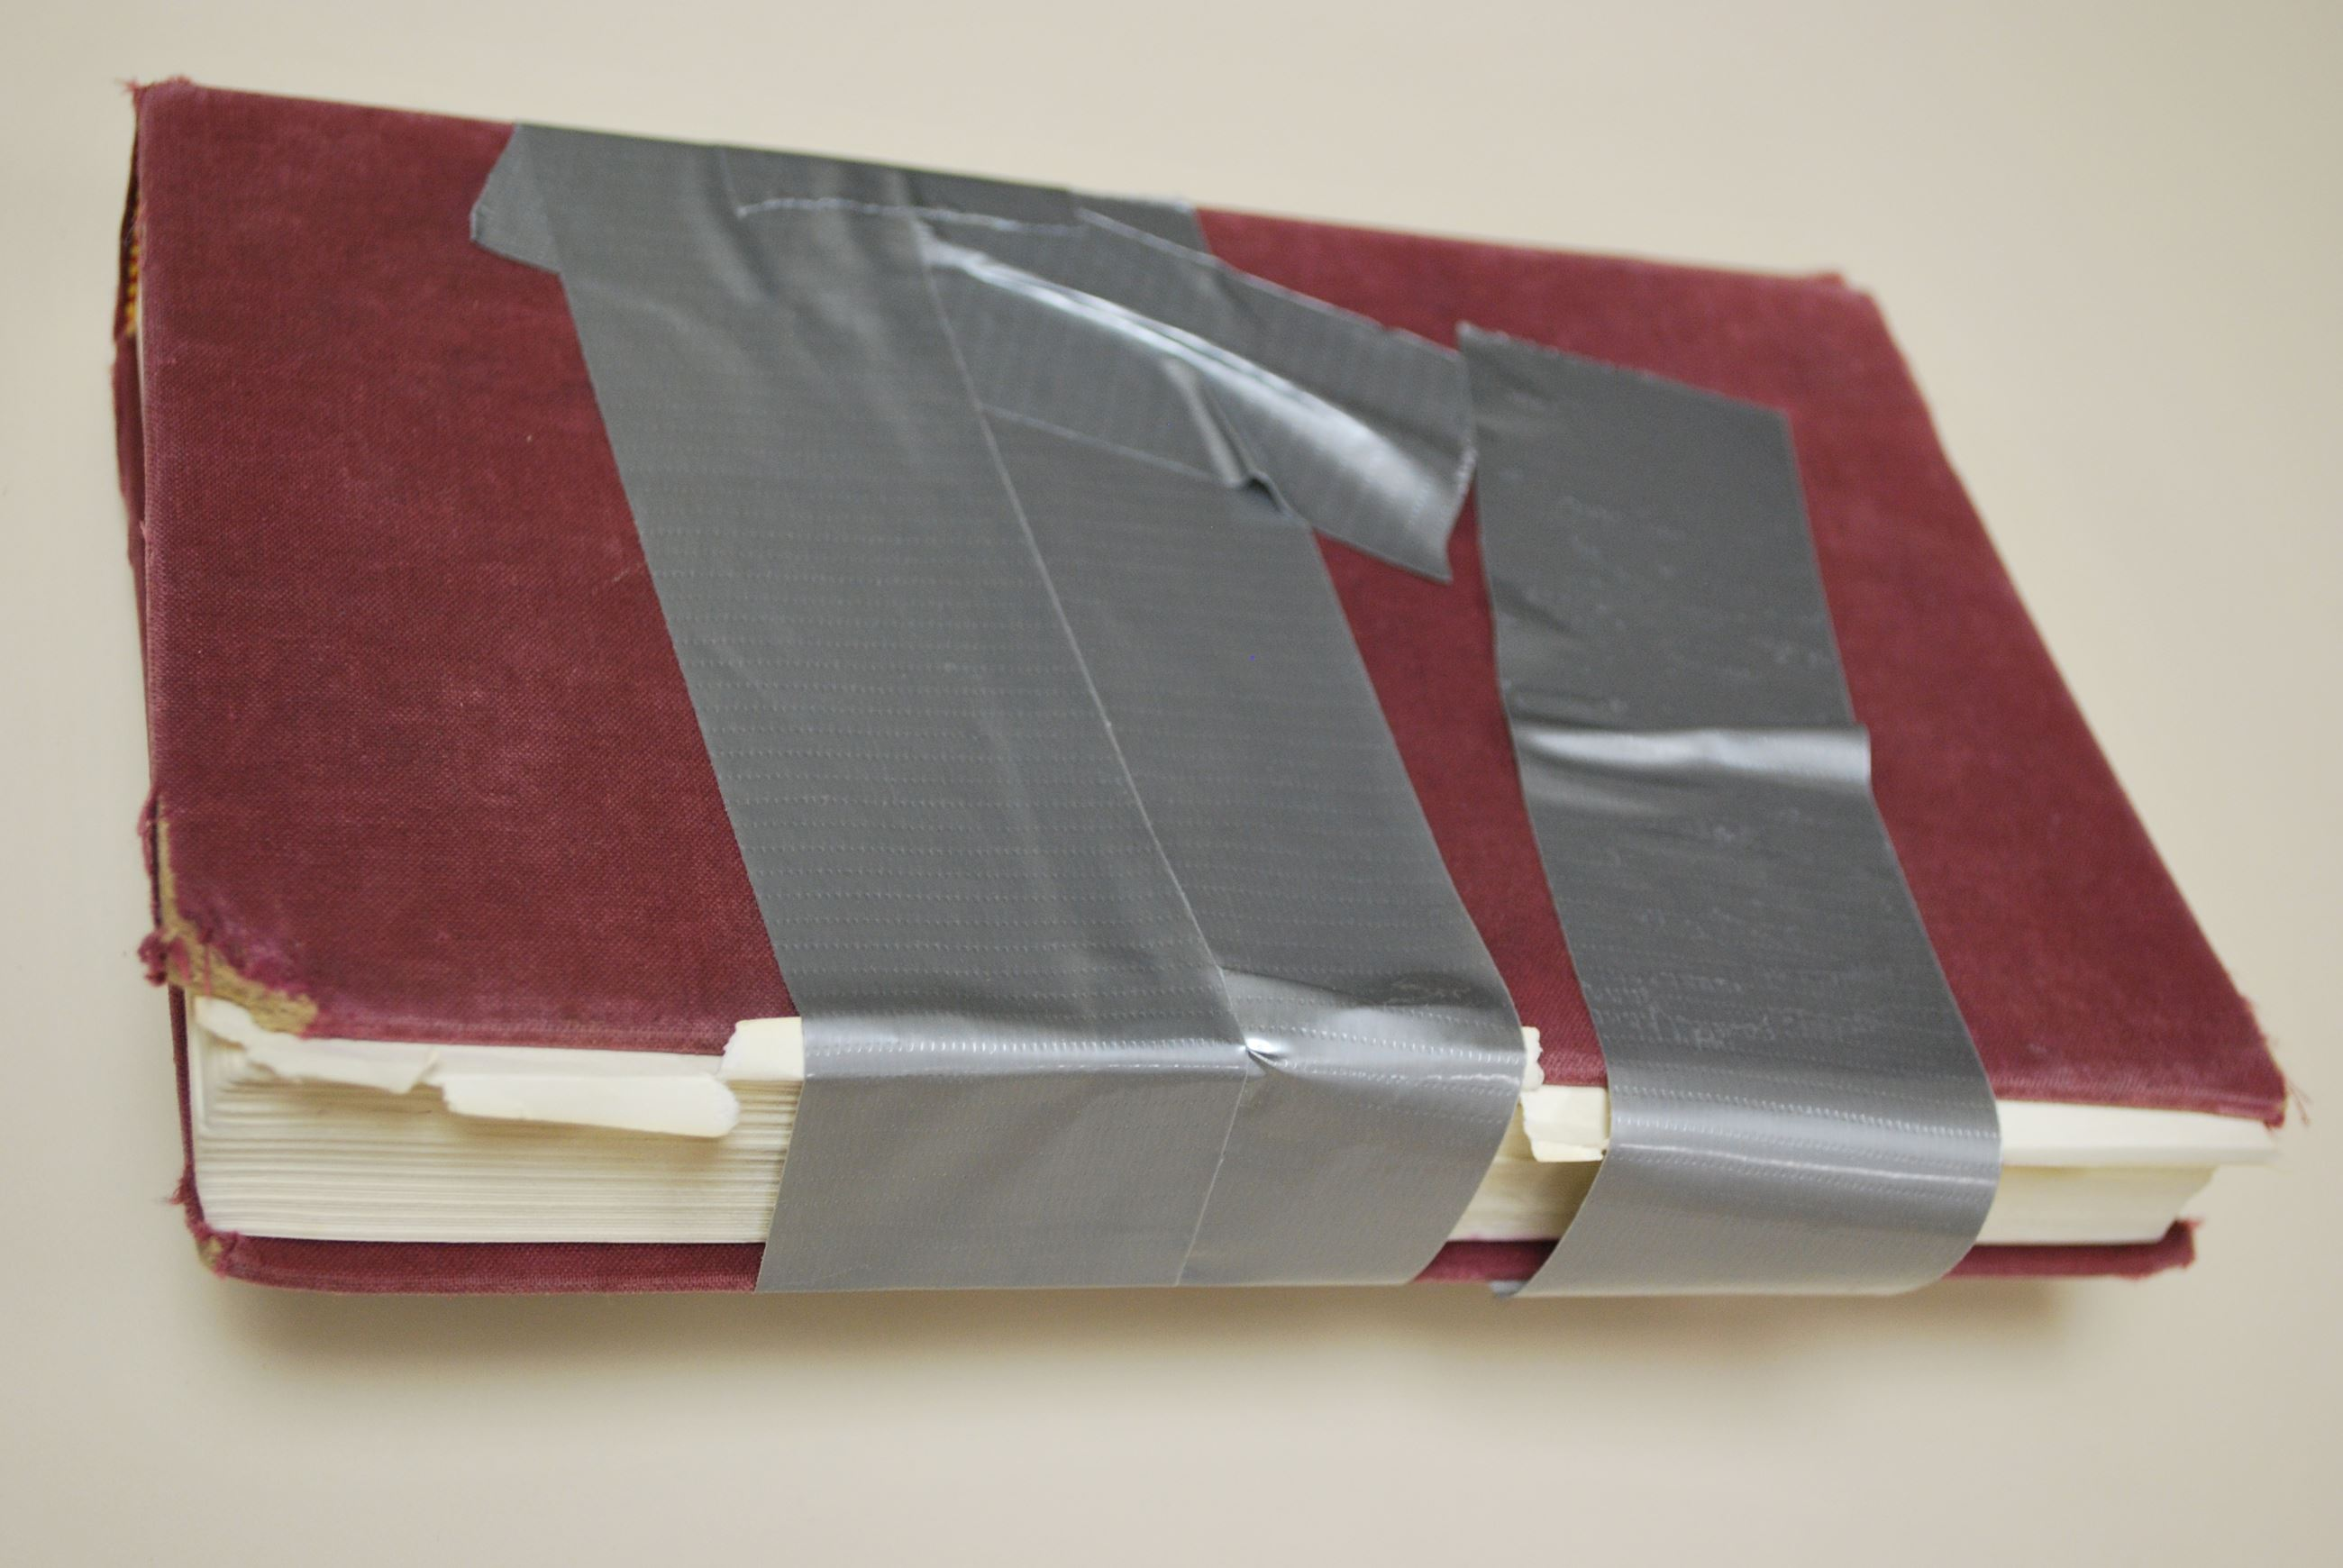 badly repaired book